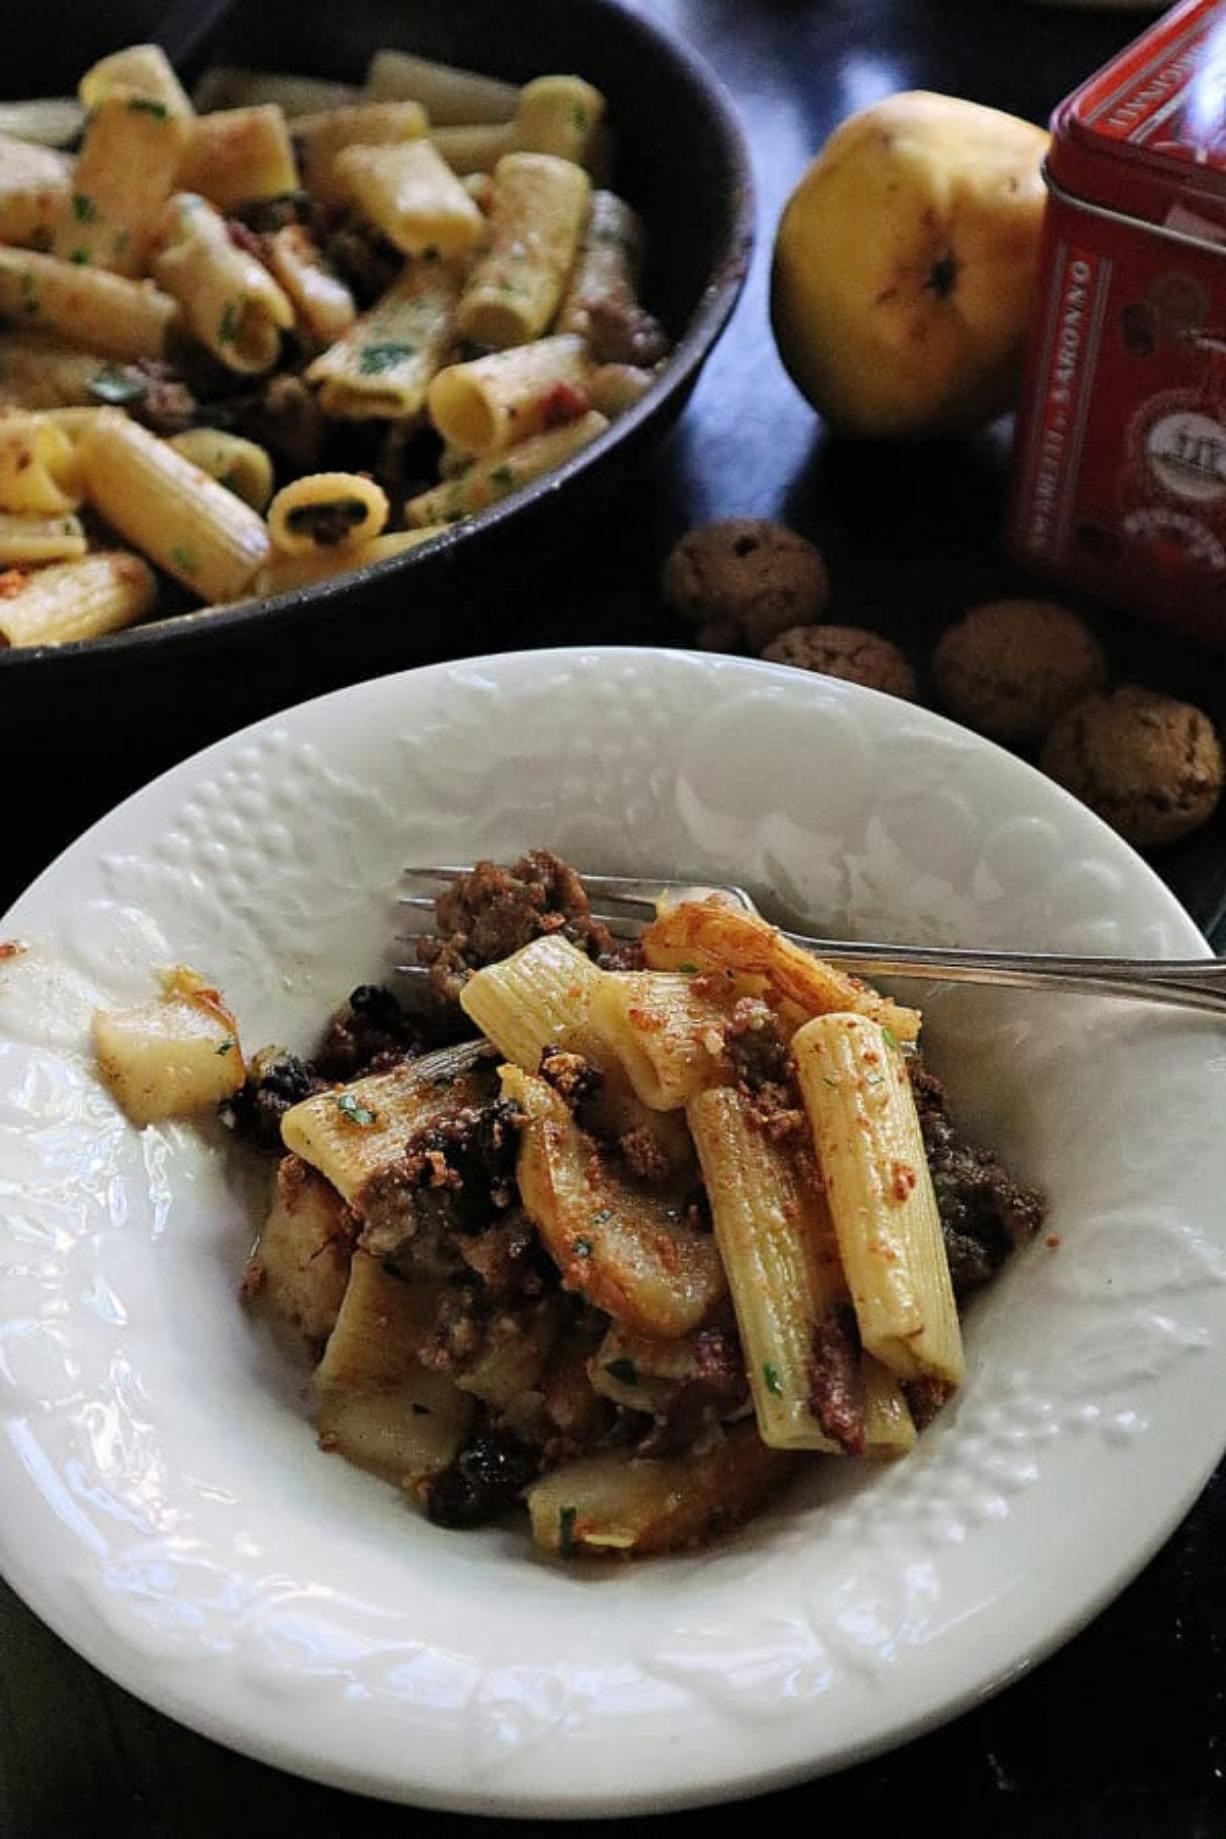 """Bacon, sausage and fresh pear team up for an """"open ravioli"""" dish that's perfect for fall."""